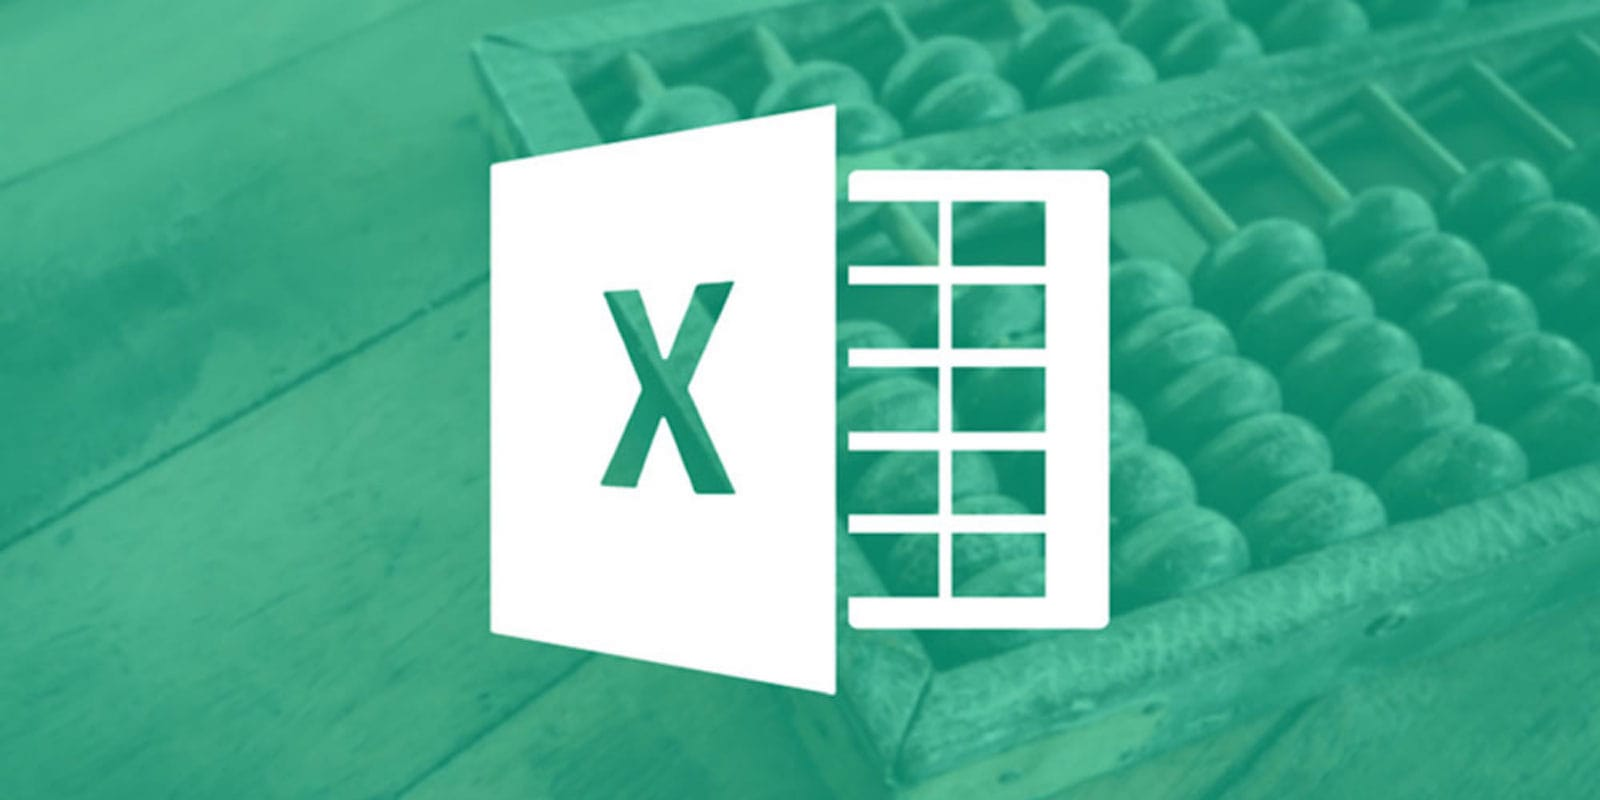 Microsoft Excel lessons give anyone valuable new professional skills